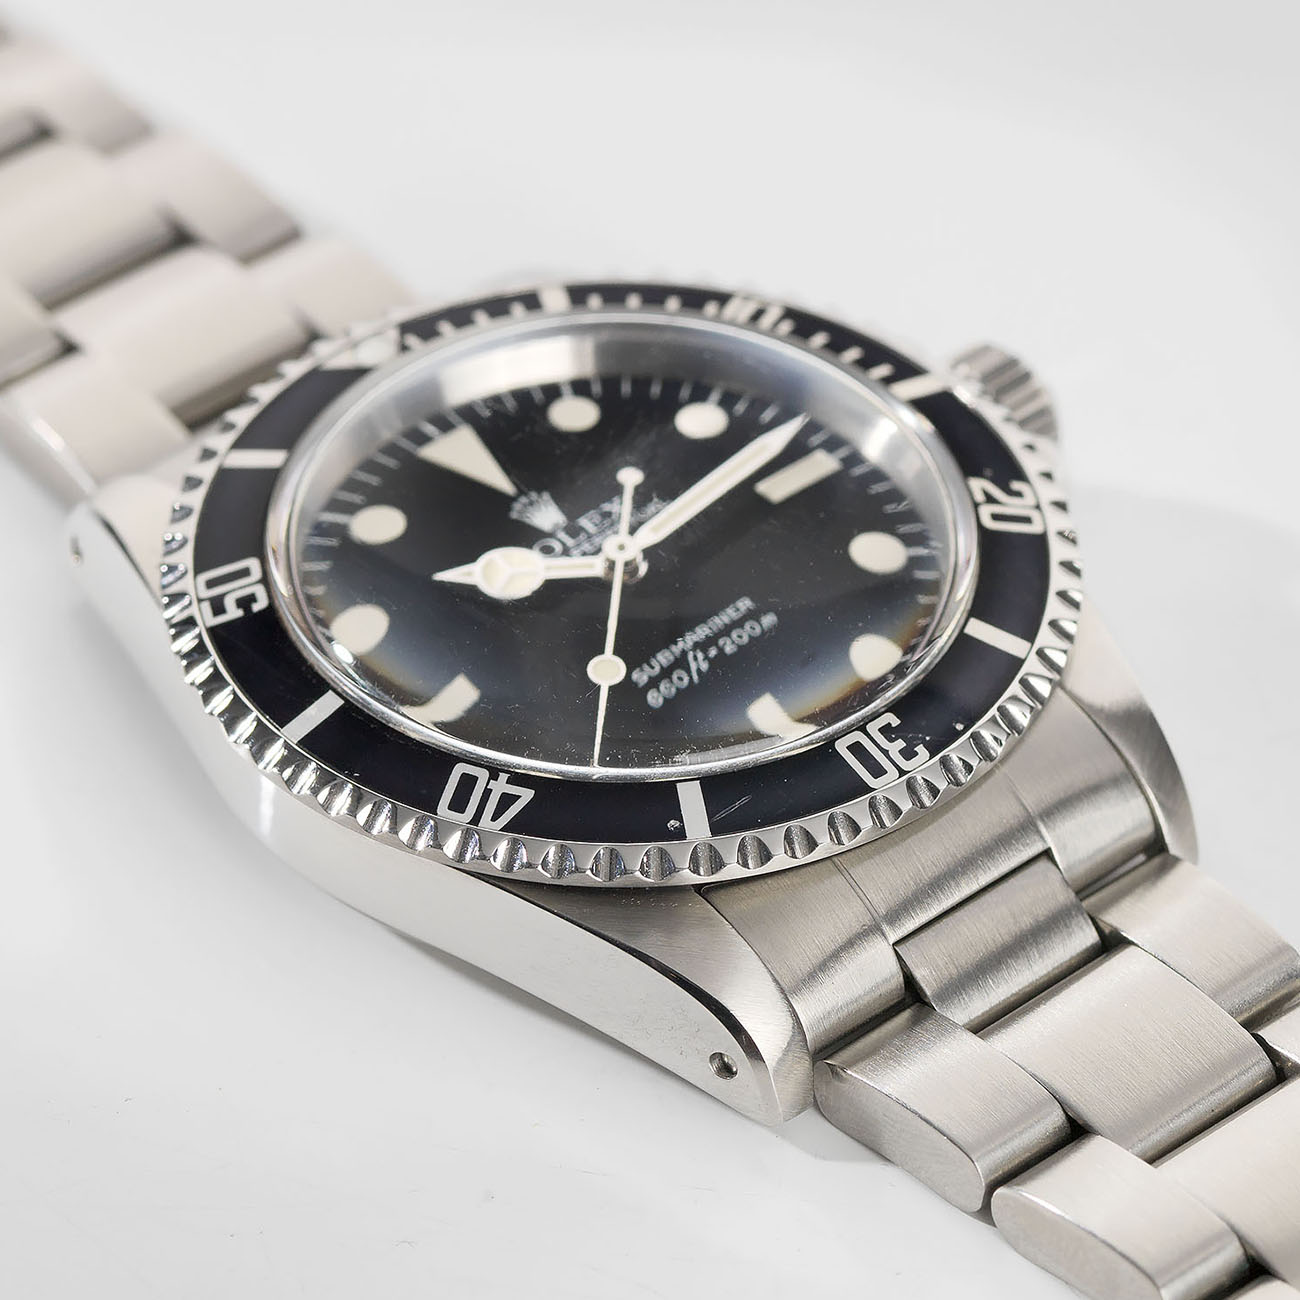 Vintage Rolex 5513 Submariner Love - Article at Bulang and Sons